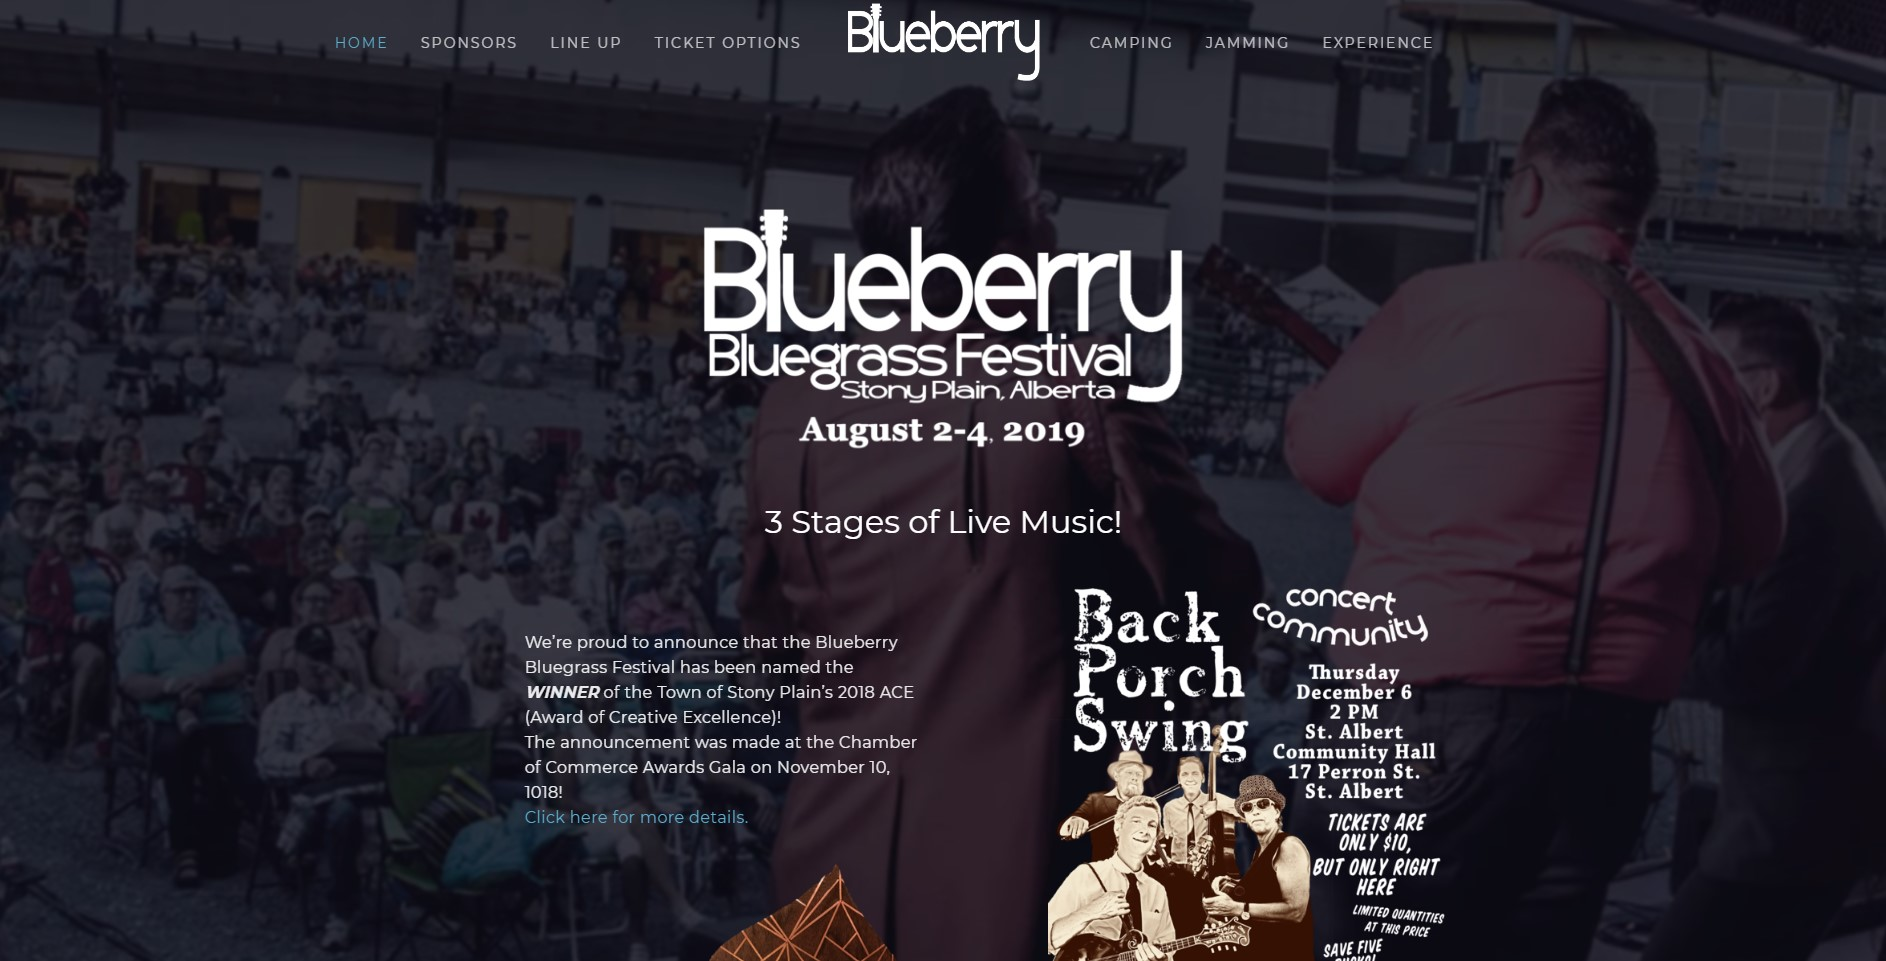 Blueberry Bluegrass Festival website redesign